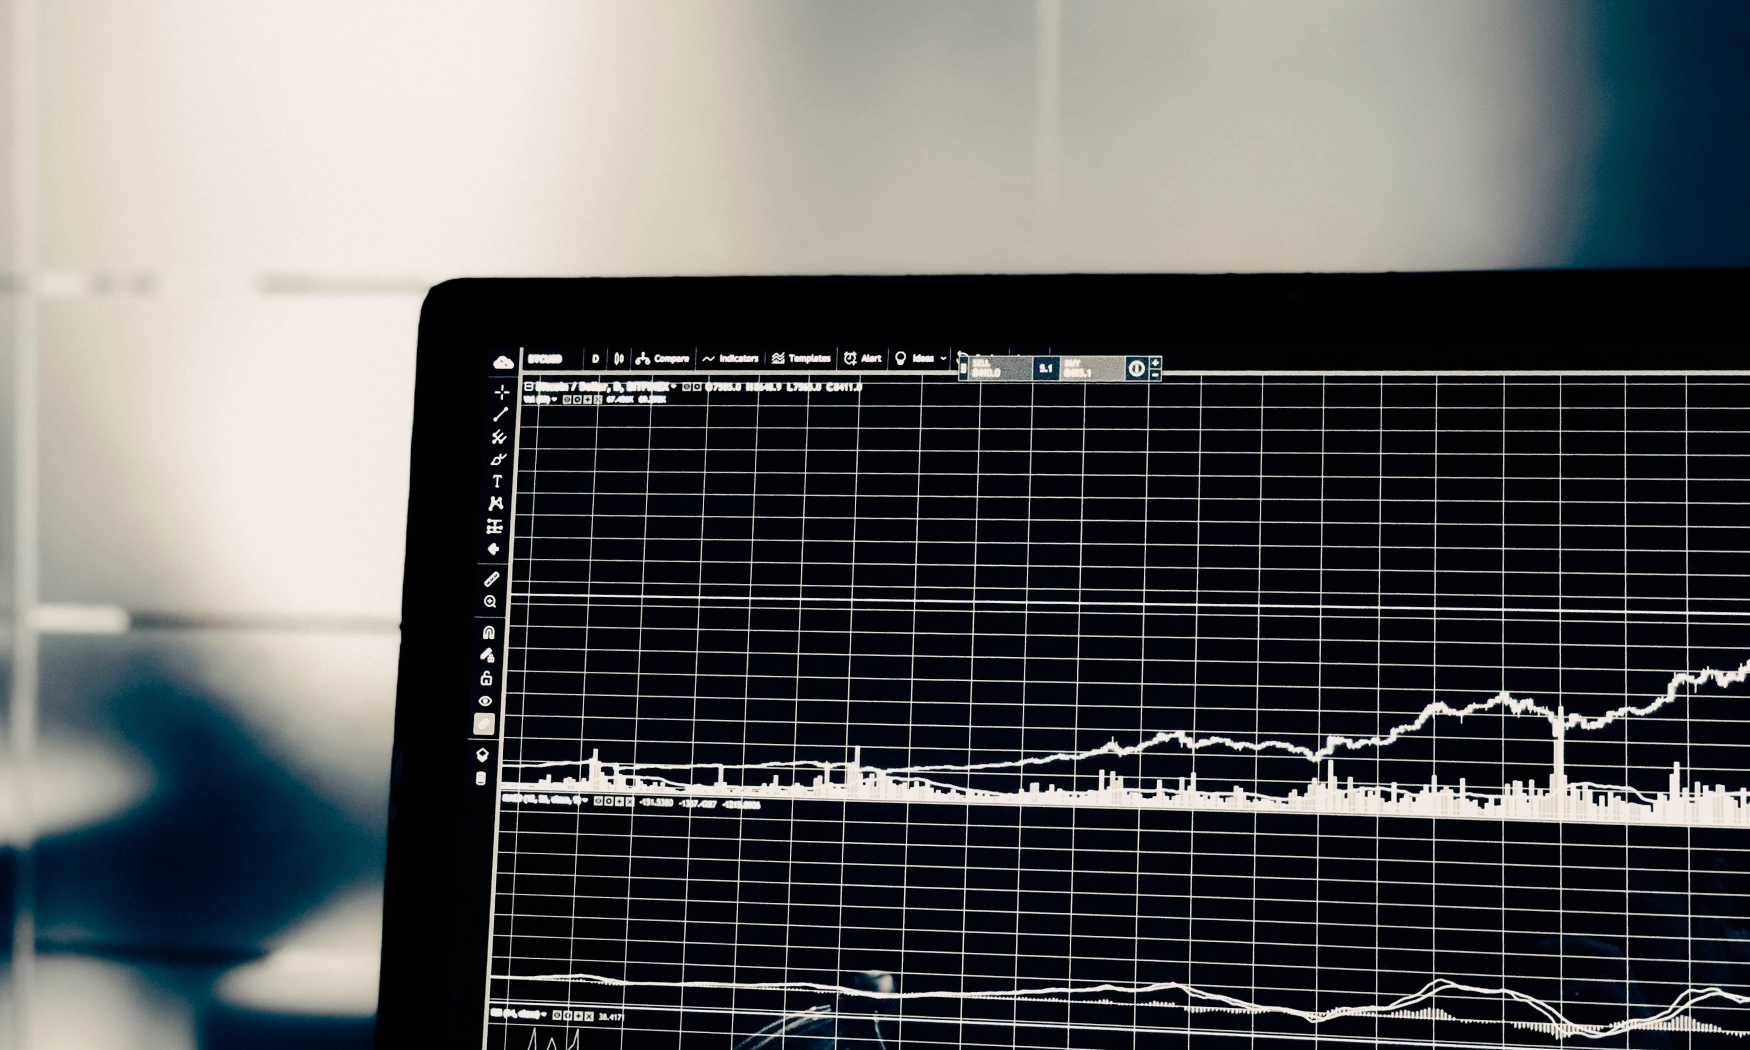 How-To: Execute Anomaly Detection at Scale in 5 Easy Steps